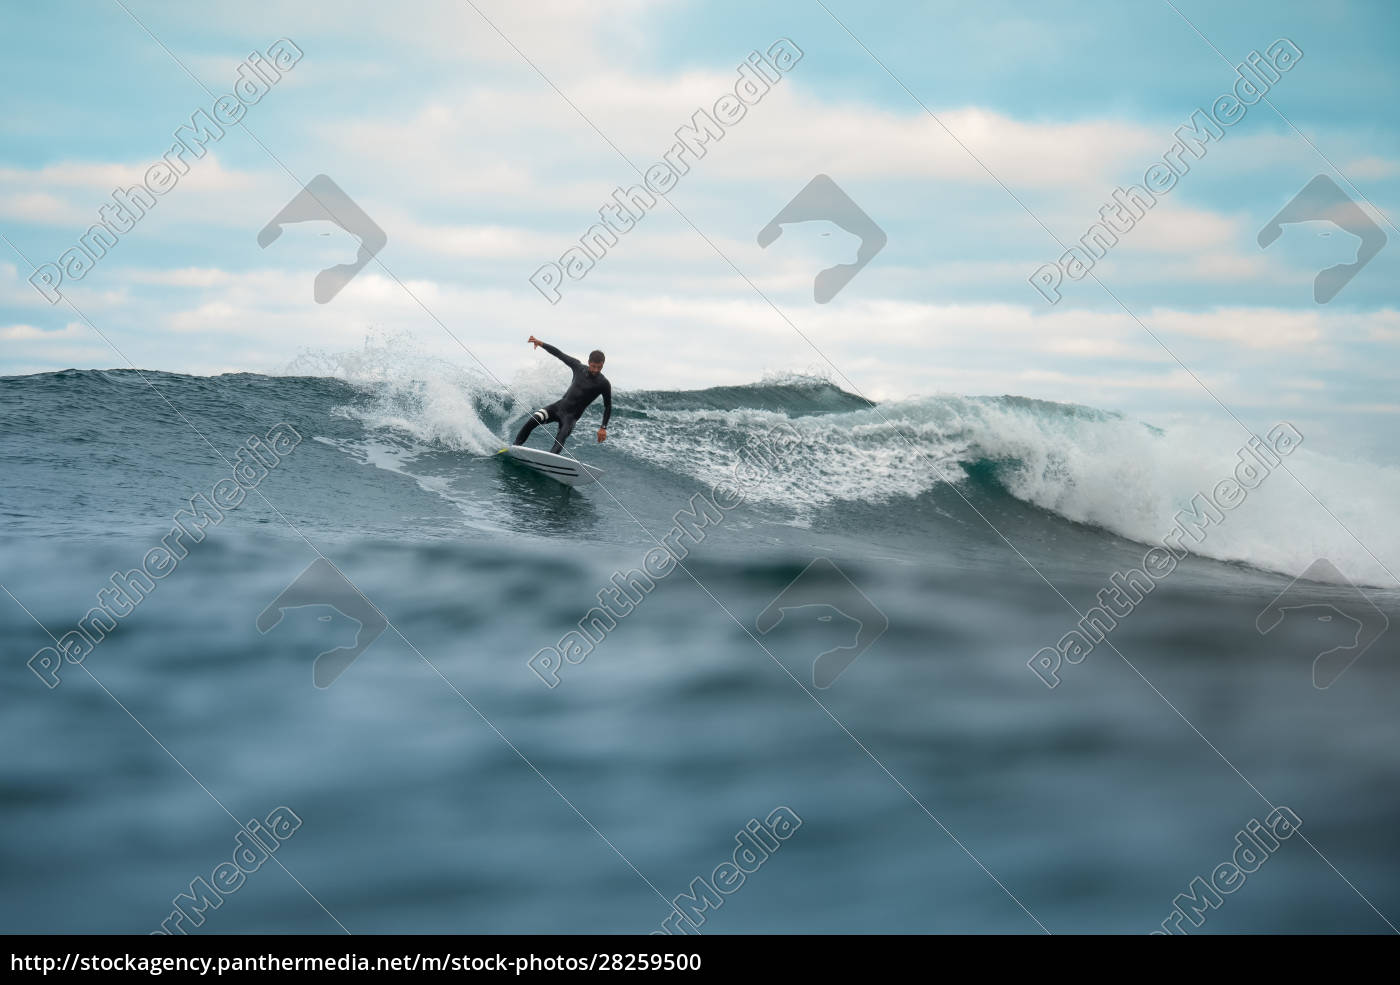 surfer, riding, waves, on, the, island - 28259500